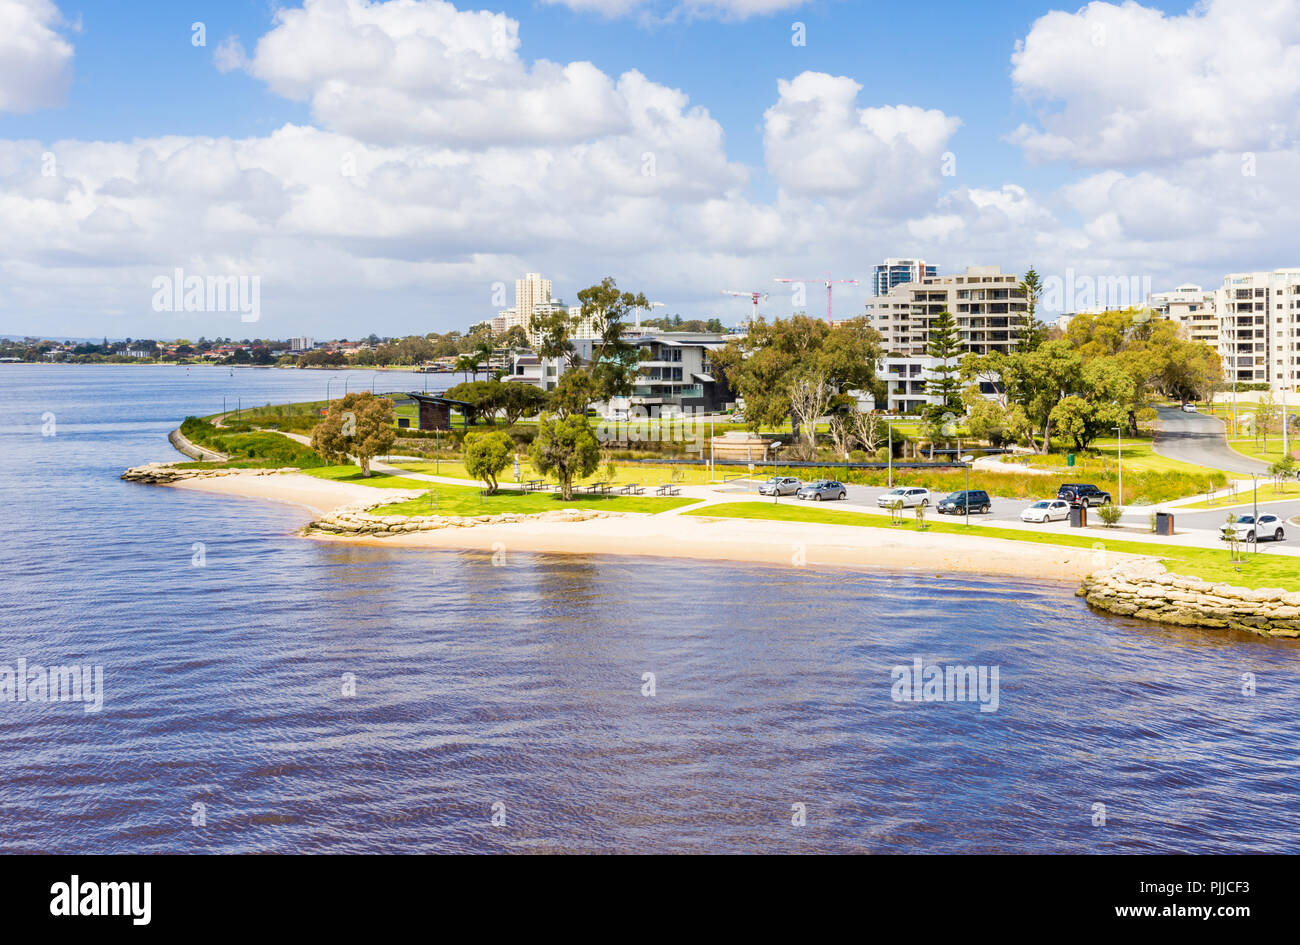 Small man made sandy beaches at Point Belches at the end of Mill Point Road, South Perth, Western Australia - Stock Image